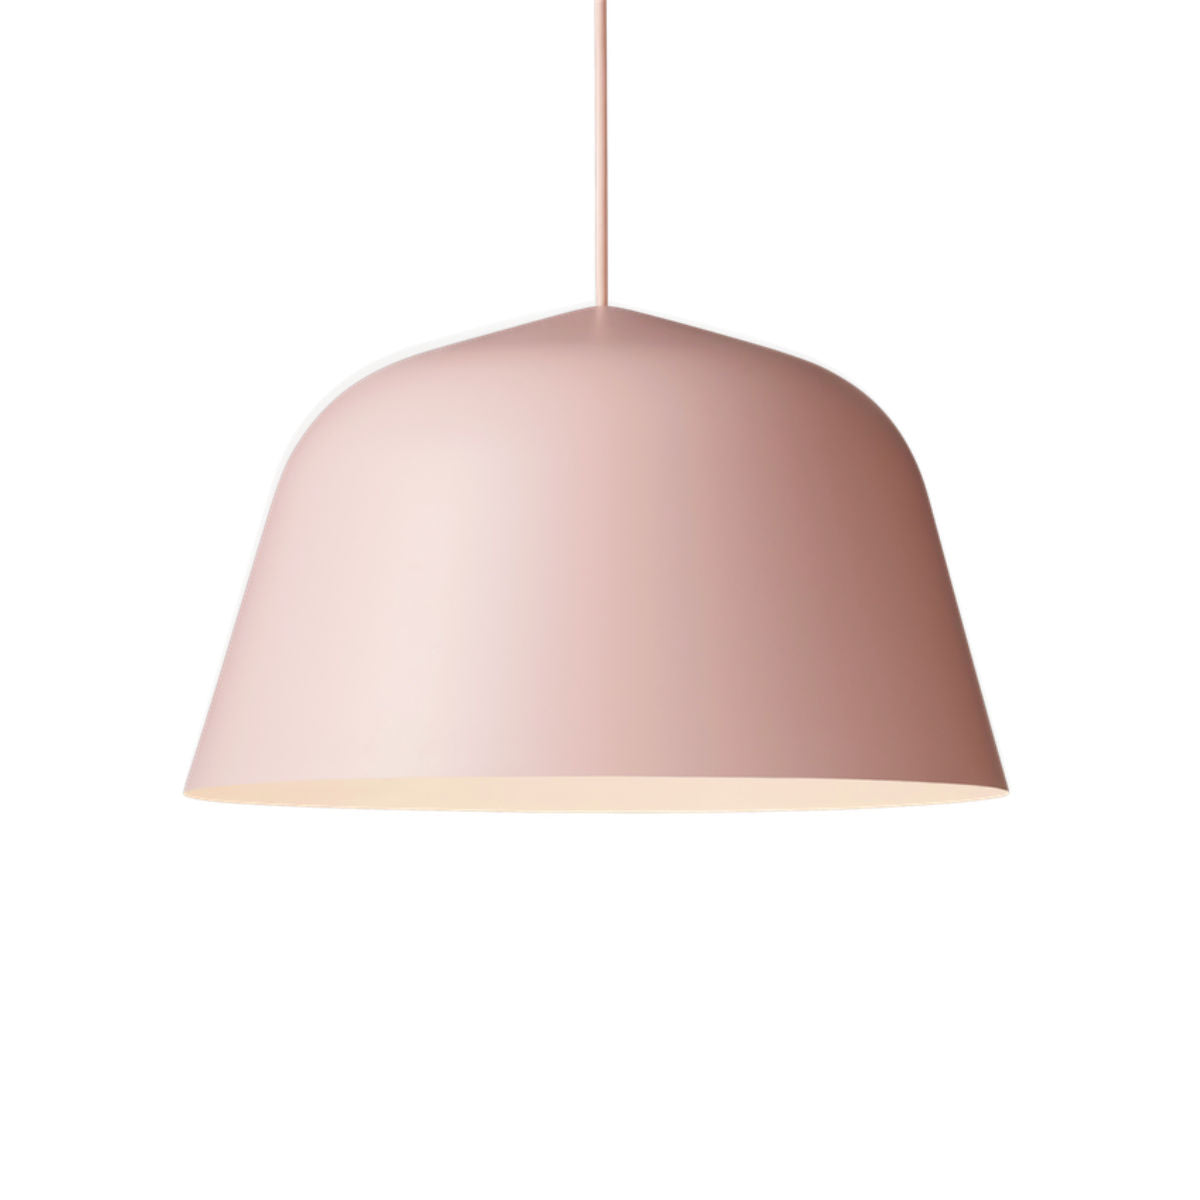 Muuto Ambit pendant lamp, rose